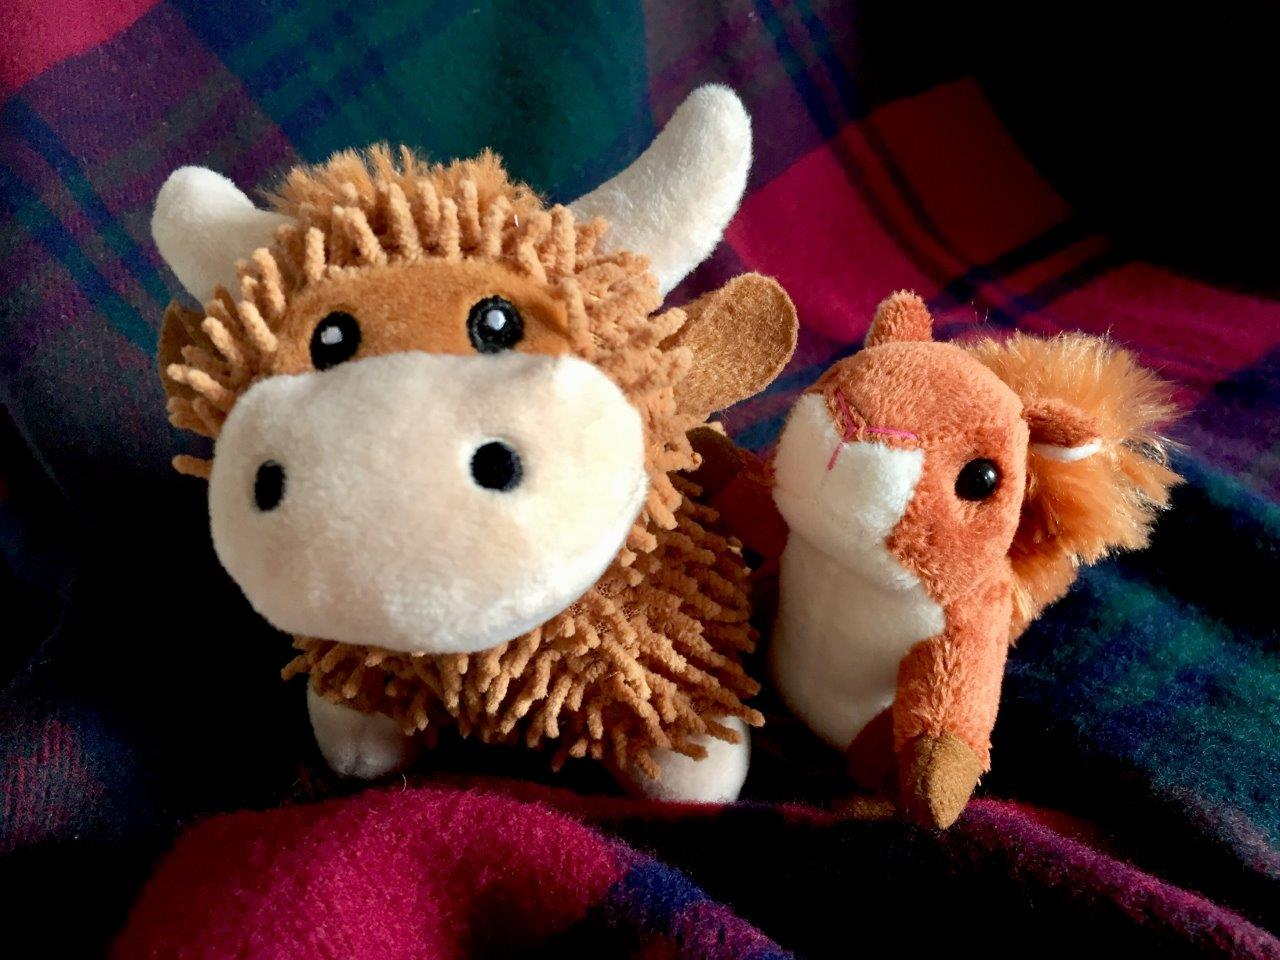 Toy highland cow and squirrel